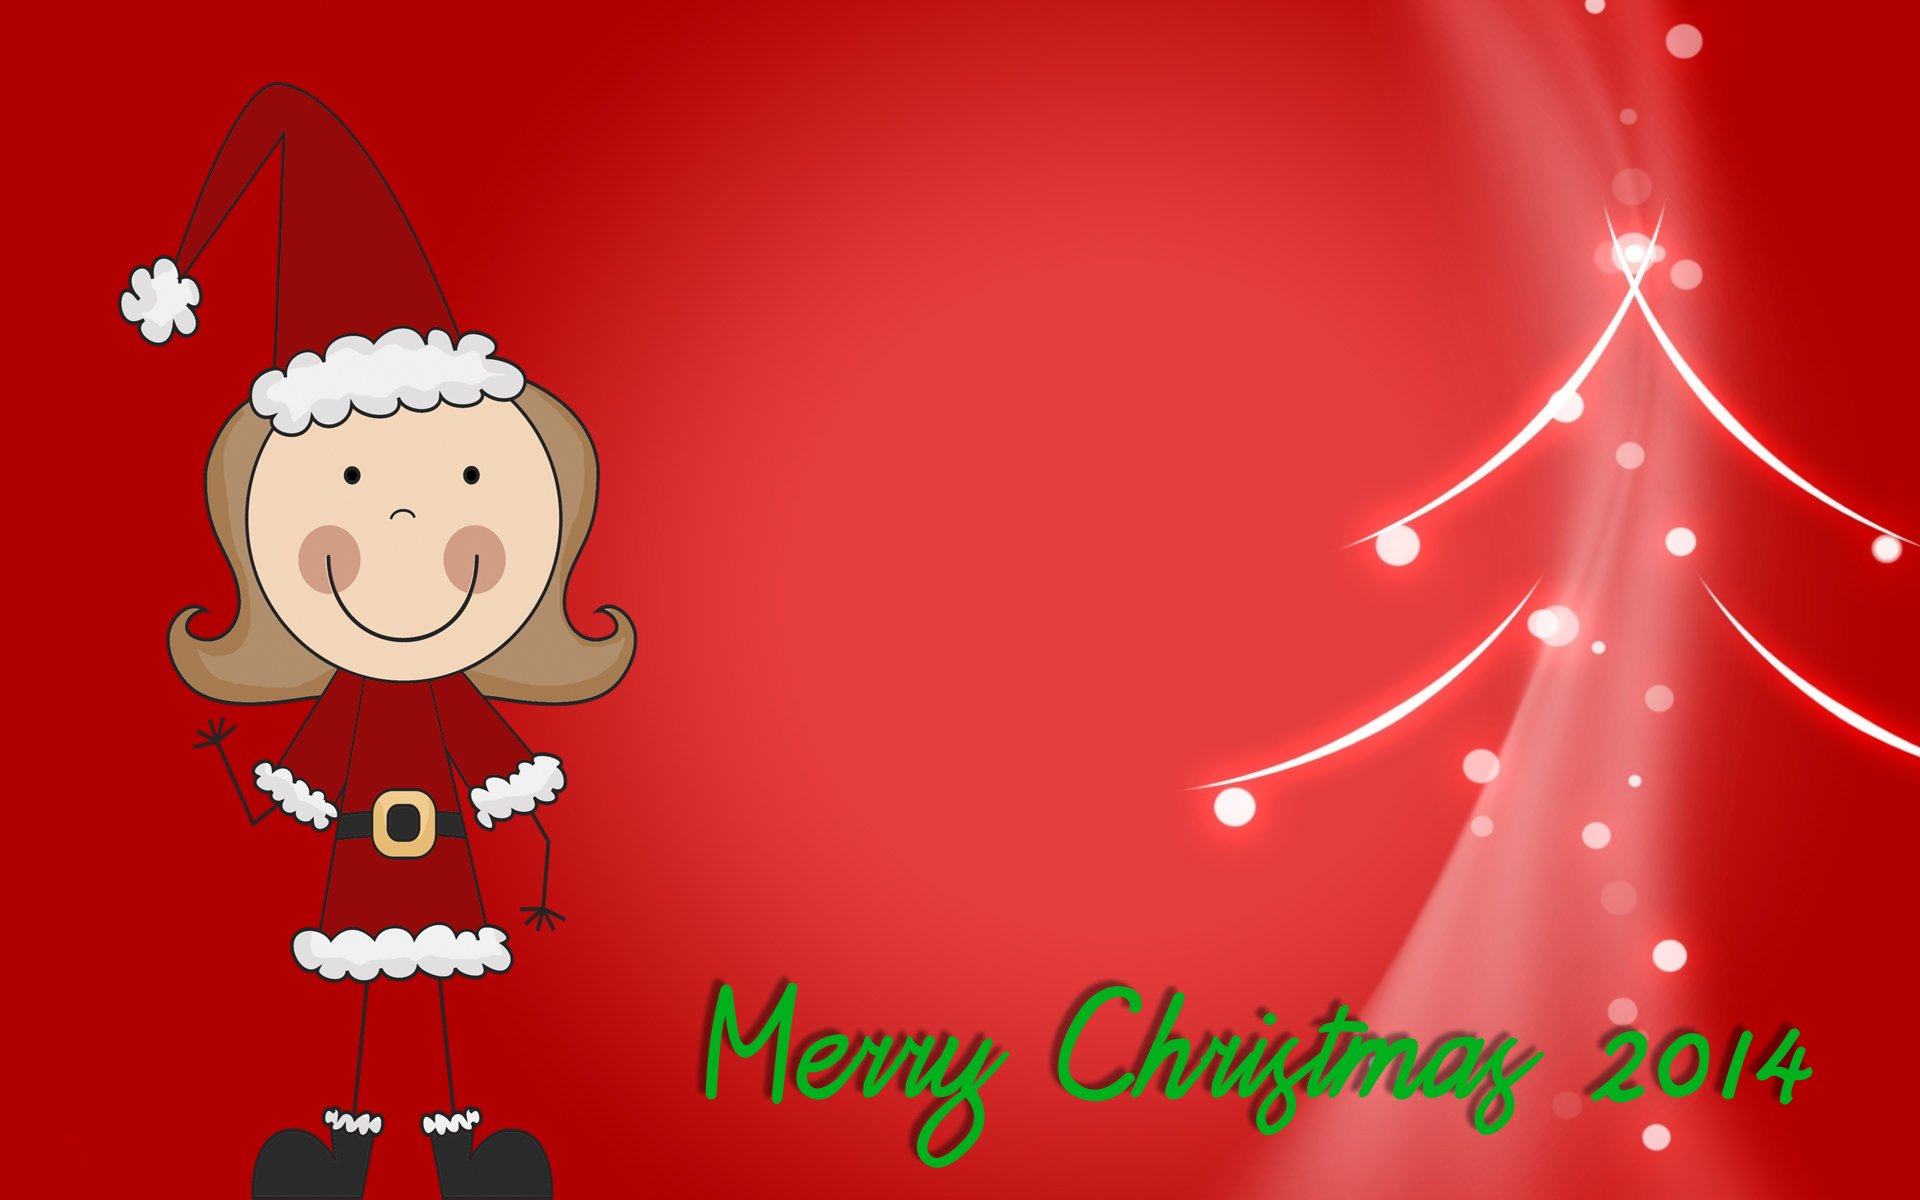 Cute cartoon christmas wallpaper wallpapersafari - Anime merry christmas wallpaper ...